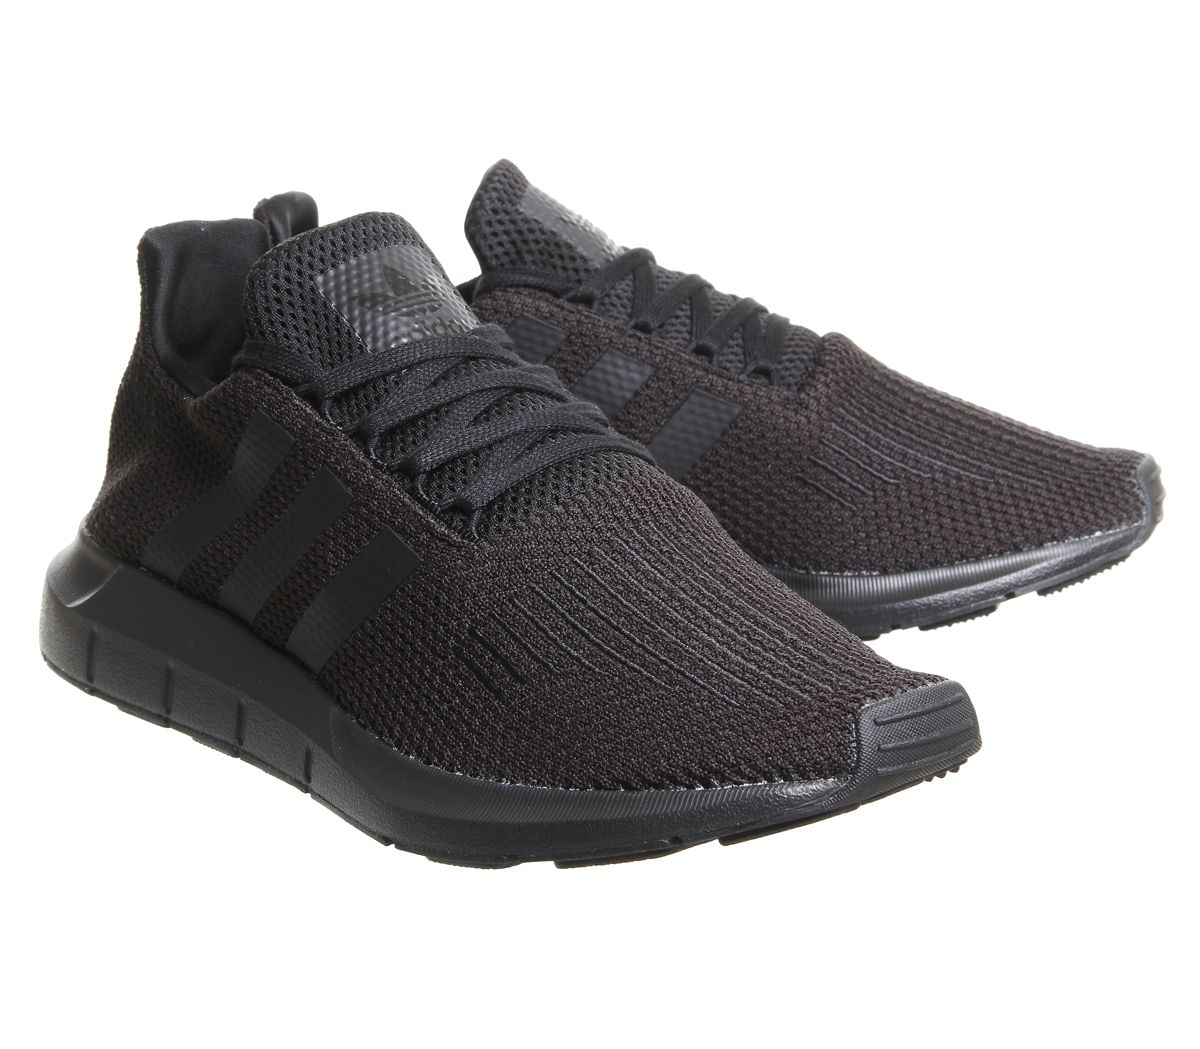 new arrival 485fc 122b0 Sentinel Mens Adidas Swift Run Trainers Black Trainers Shoes